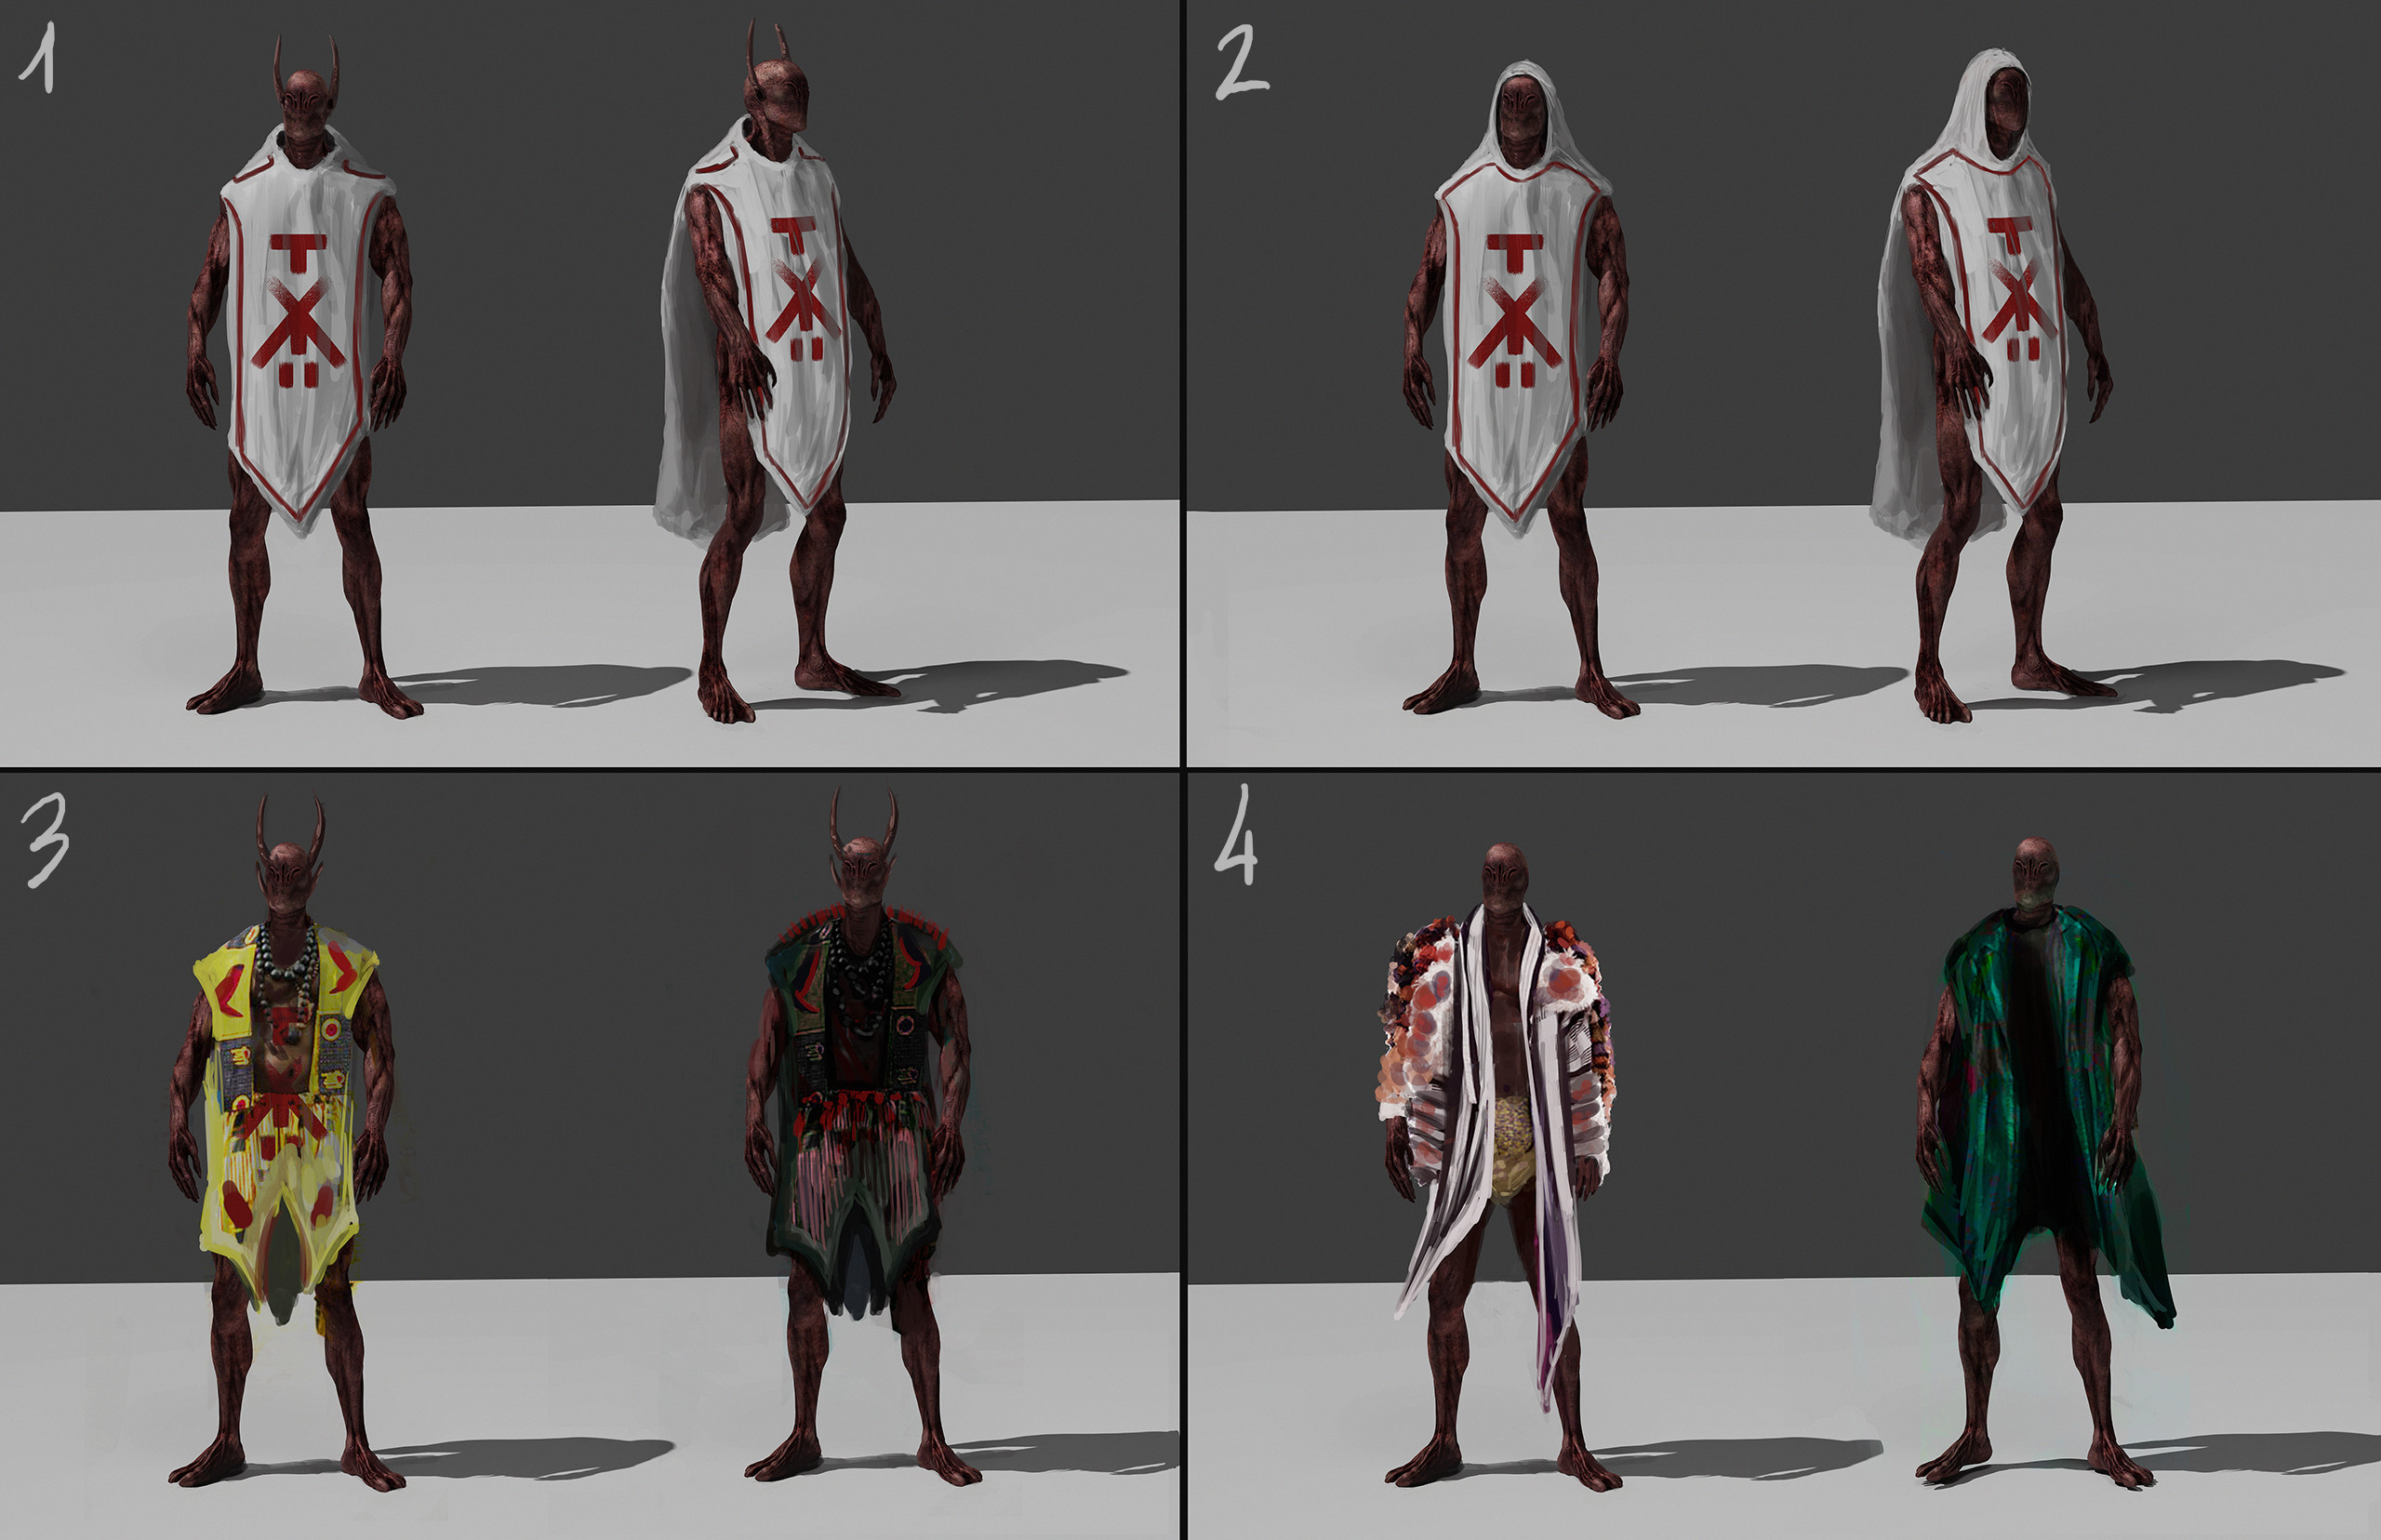 Shaman: trying to find a good outfit for the shaman (previous concept).   3/4: colorful versions just for fun.